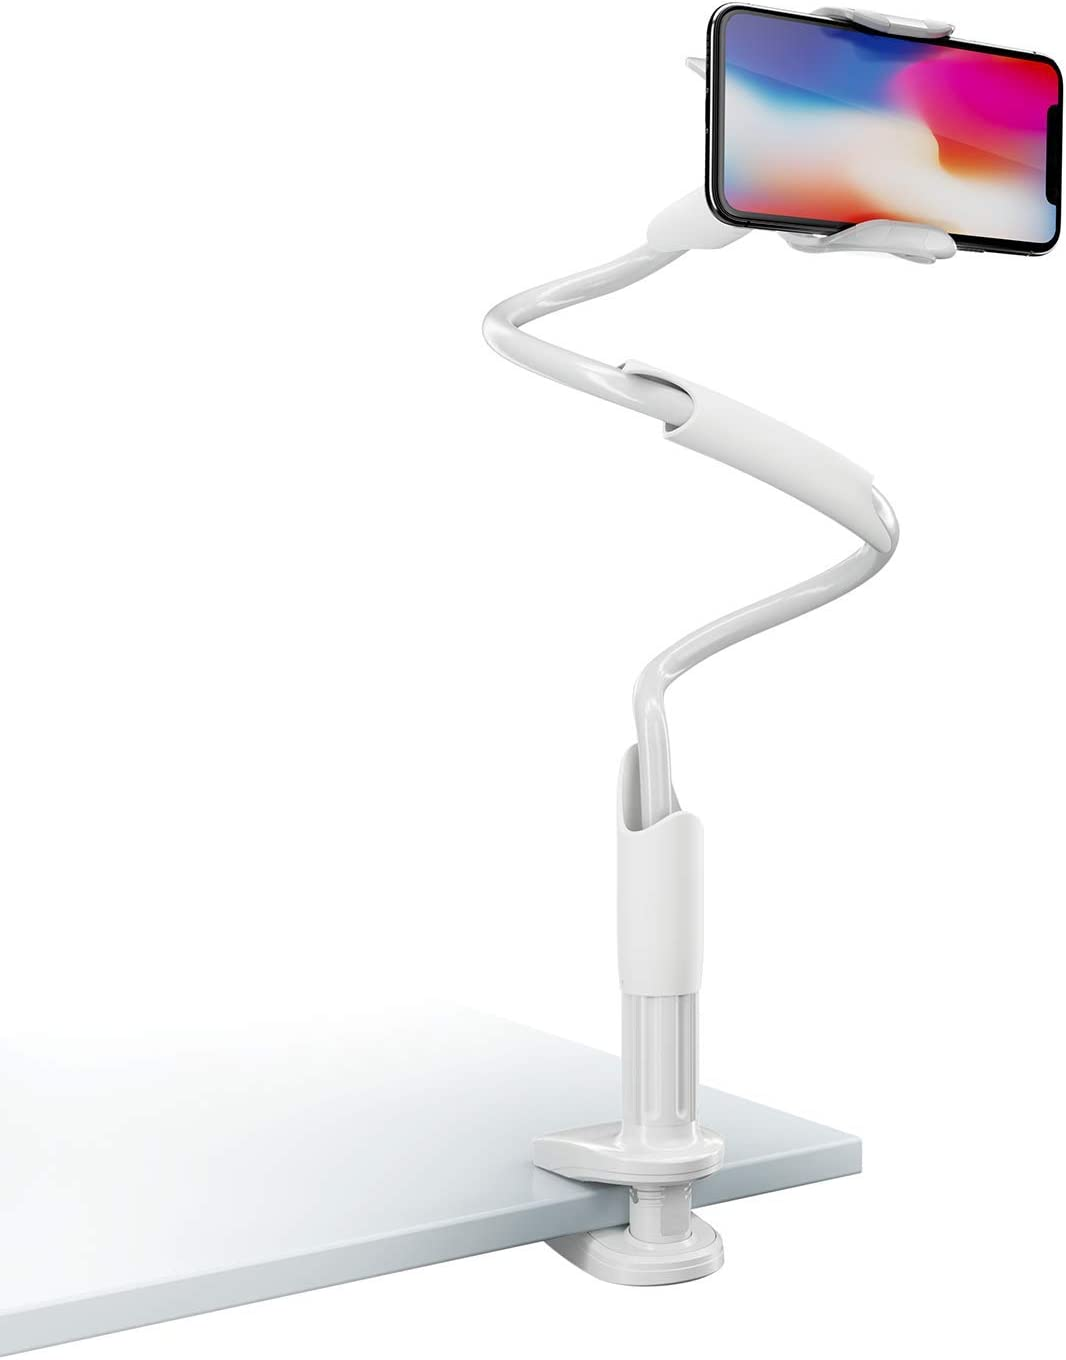 Phone Holder Bed Gooseneck Mount - Lamicall Flexible Arm 360 Mount Clip Bracket Clamp Stand for Cell Phone 11 Pro XS Max XR X 8 7 6 Plus 5 4, Samsung S10 S9 S8 S7 S6, Overall Length 33.4In(White)